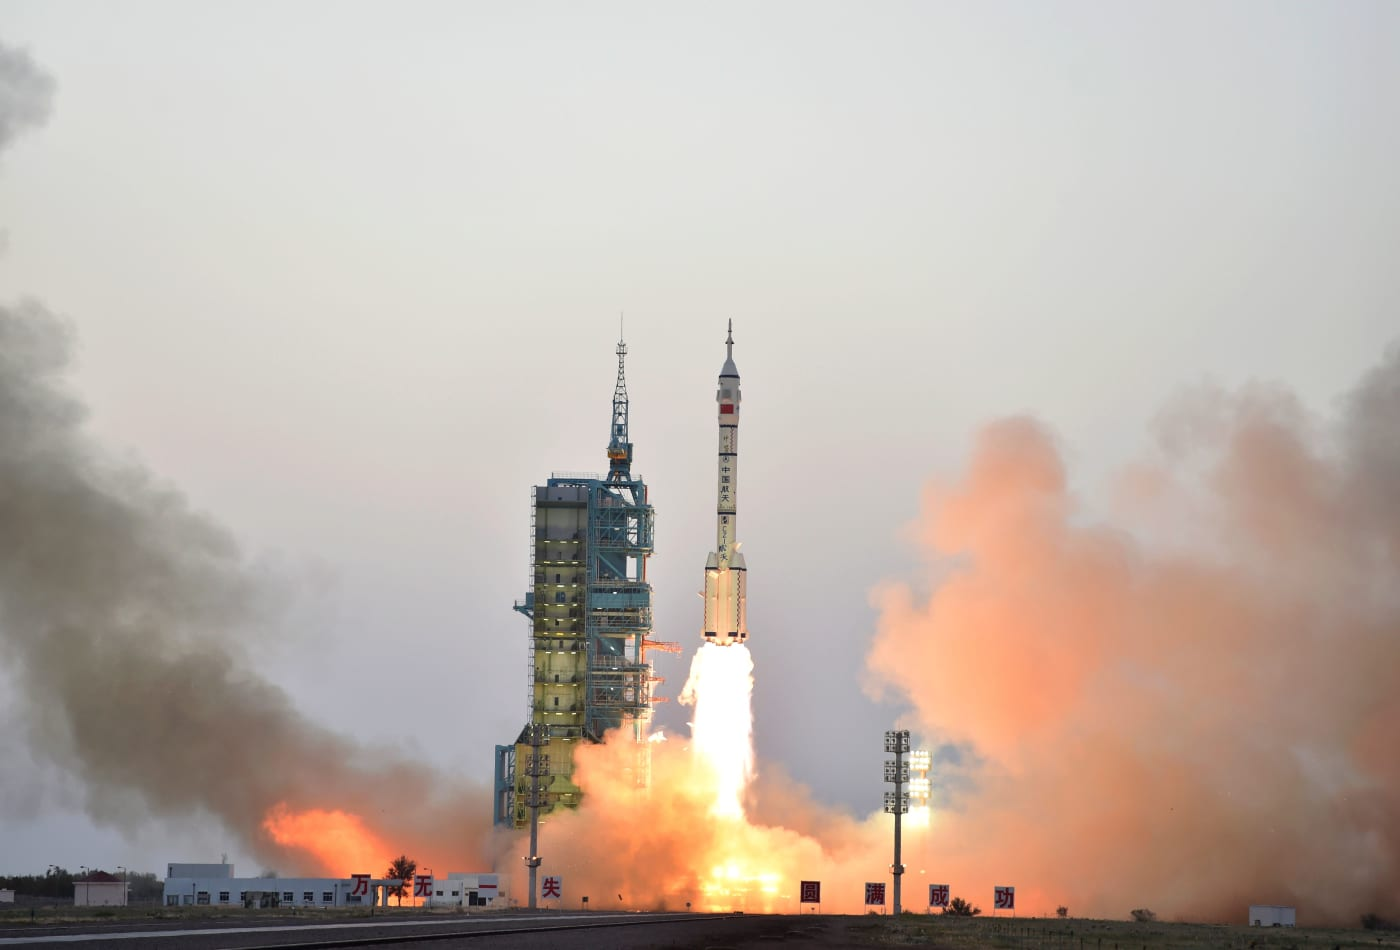 China lands its first reusable spacecraft as state media hails it as an 'important breakthrough'